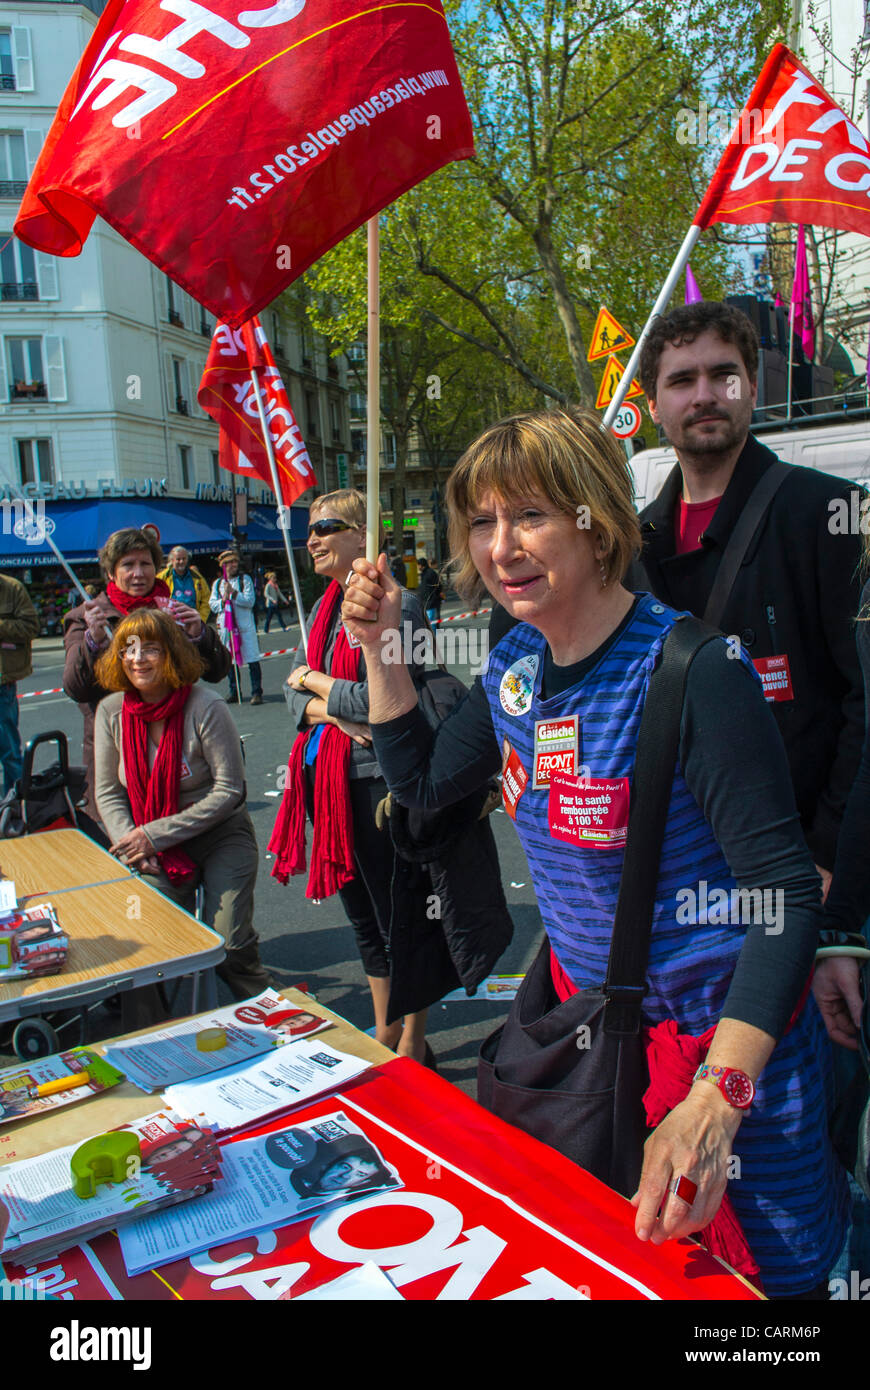 Paris, France, Public Hospital Personal Protest with 'Front de Gauche'  Health and Social Issues , Woman, - Stock Image